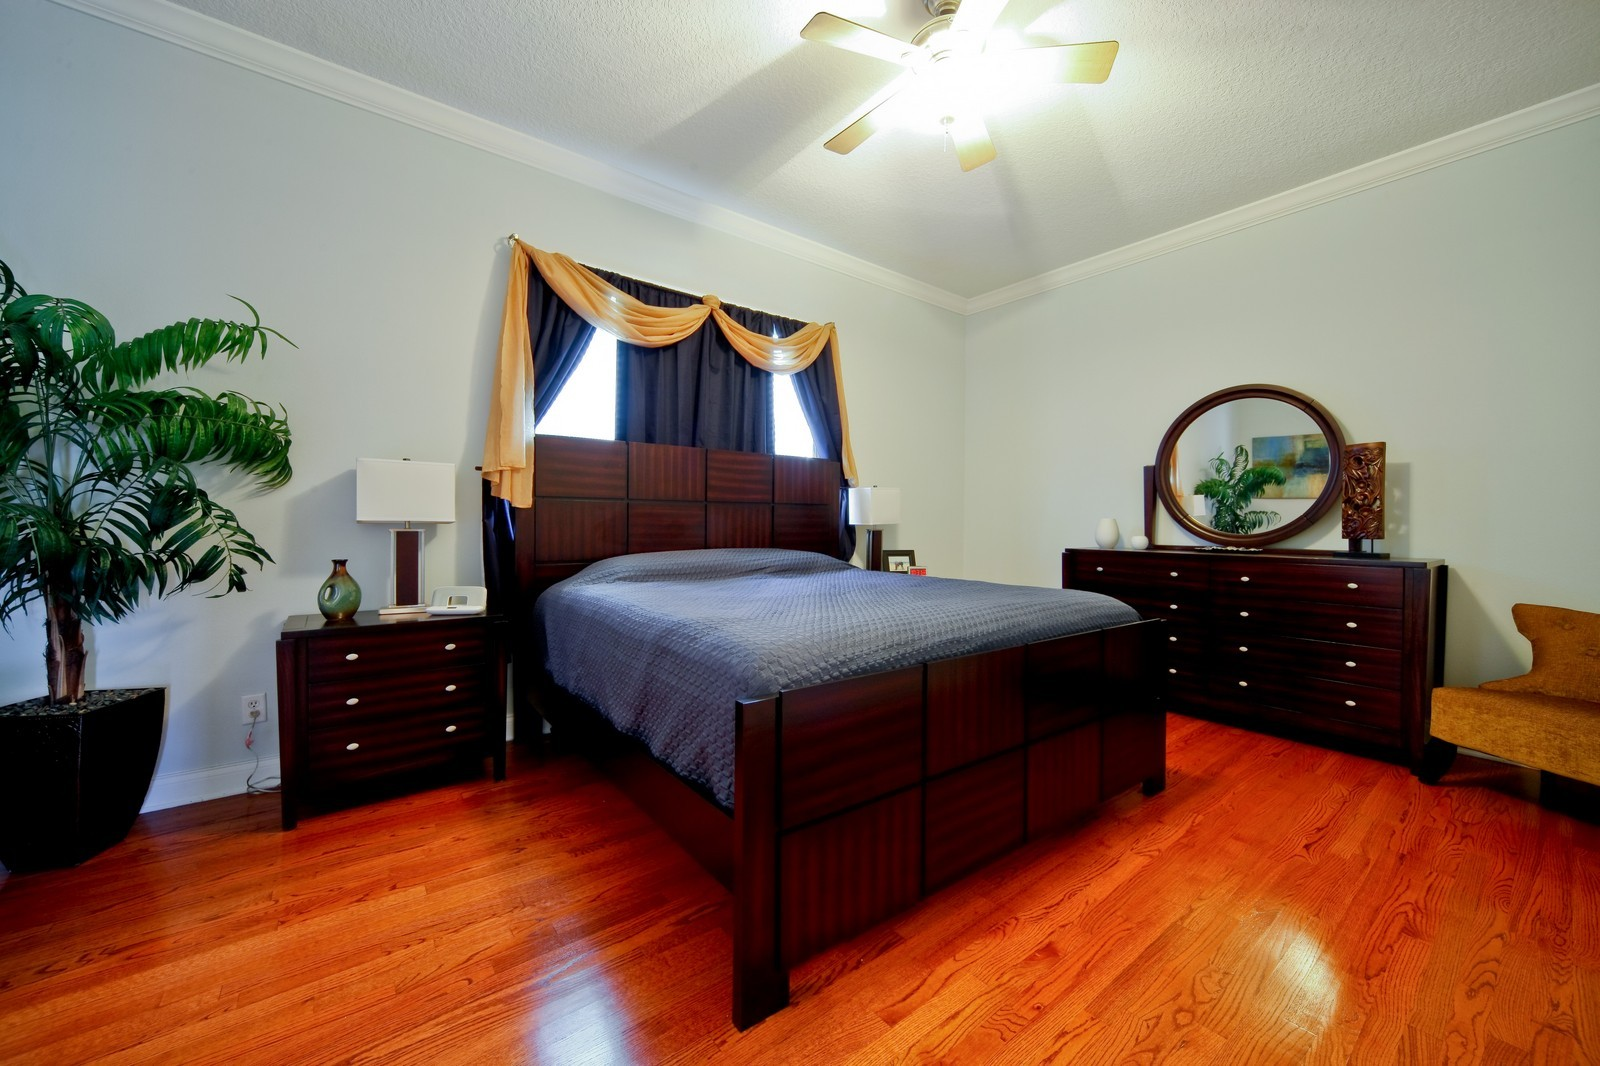 Real Estate Photography - 3812 El Prado Blvd, Tampa, FL, 33629 - Master Bedroom